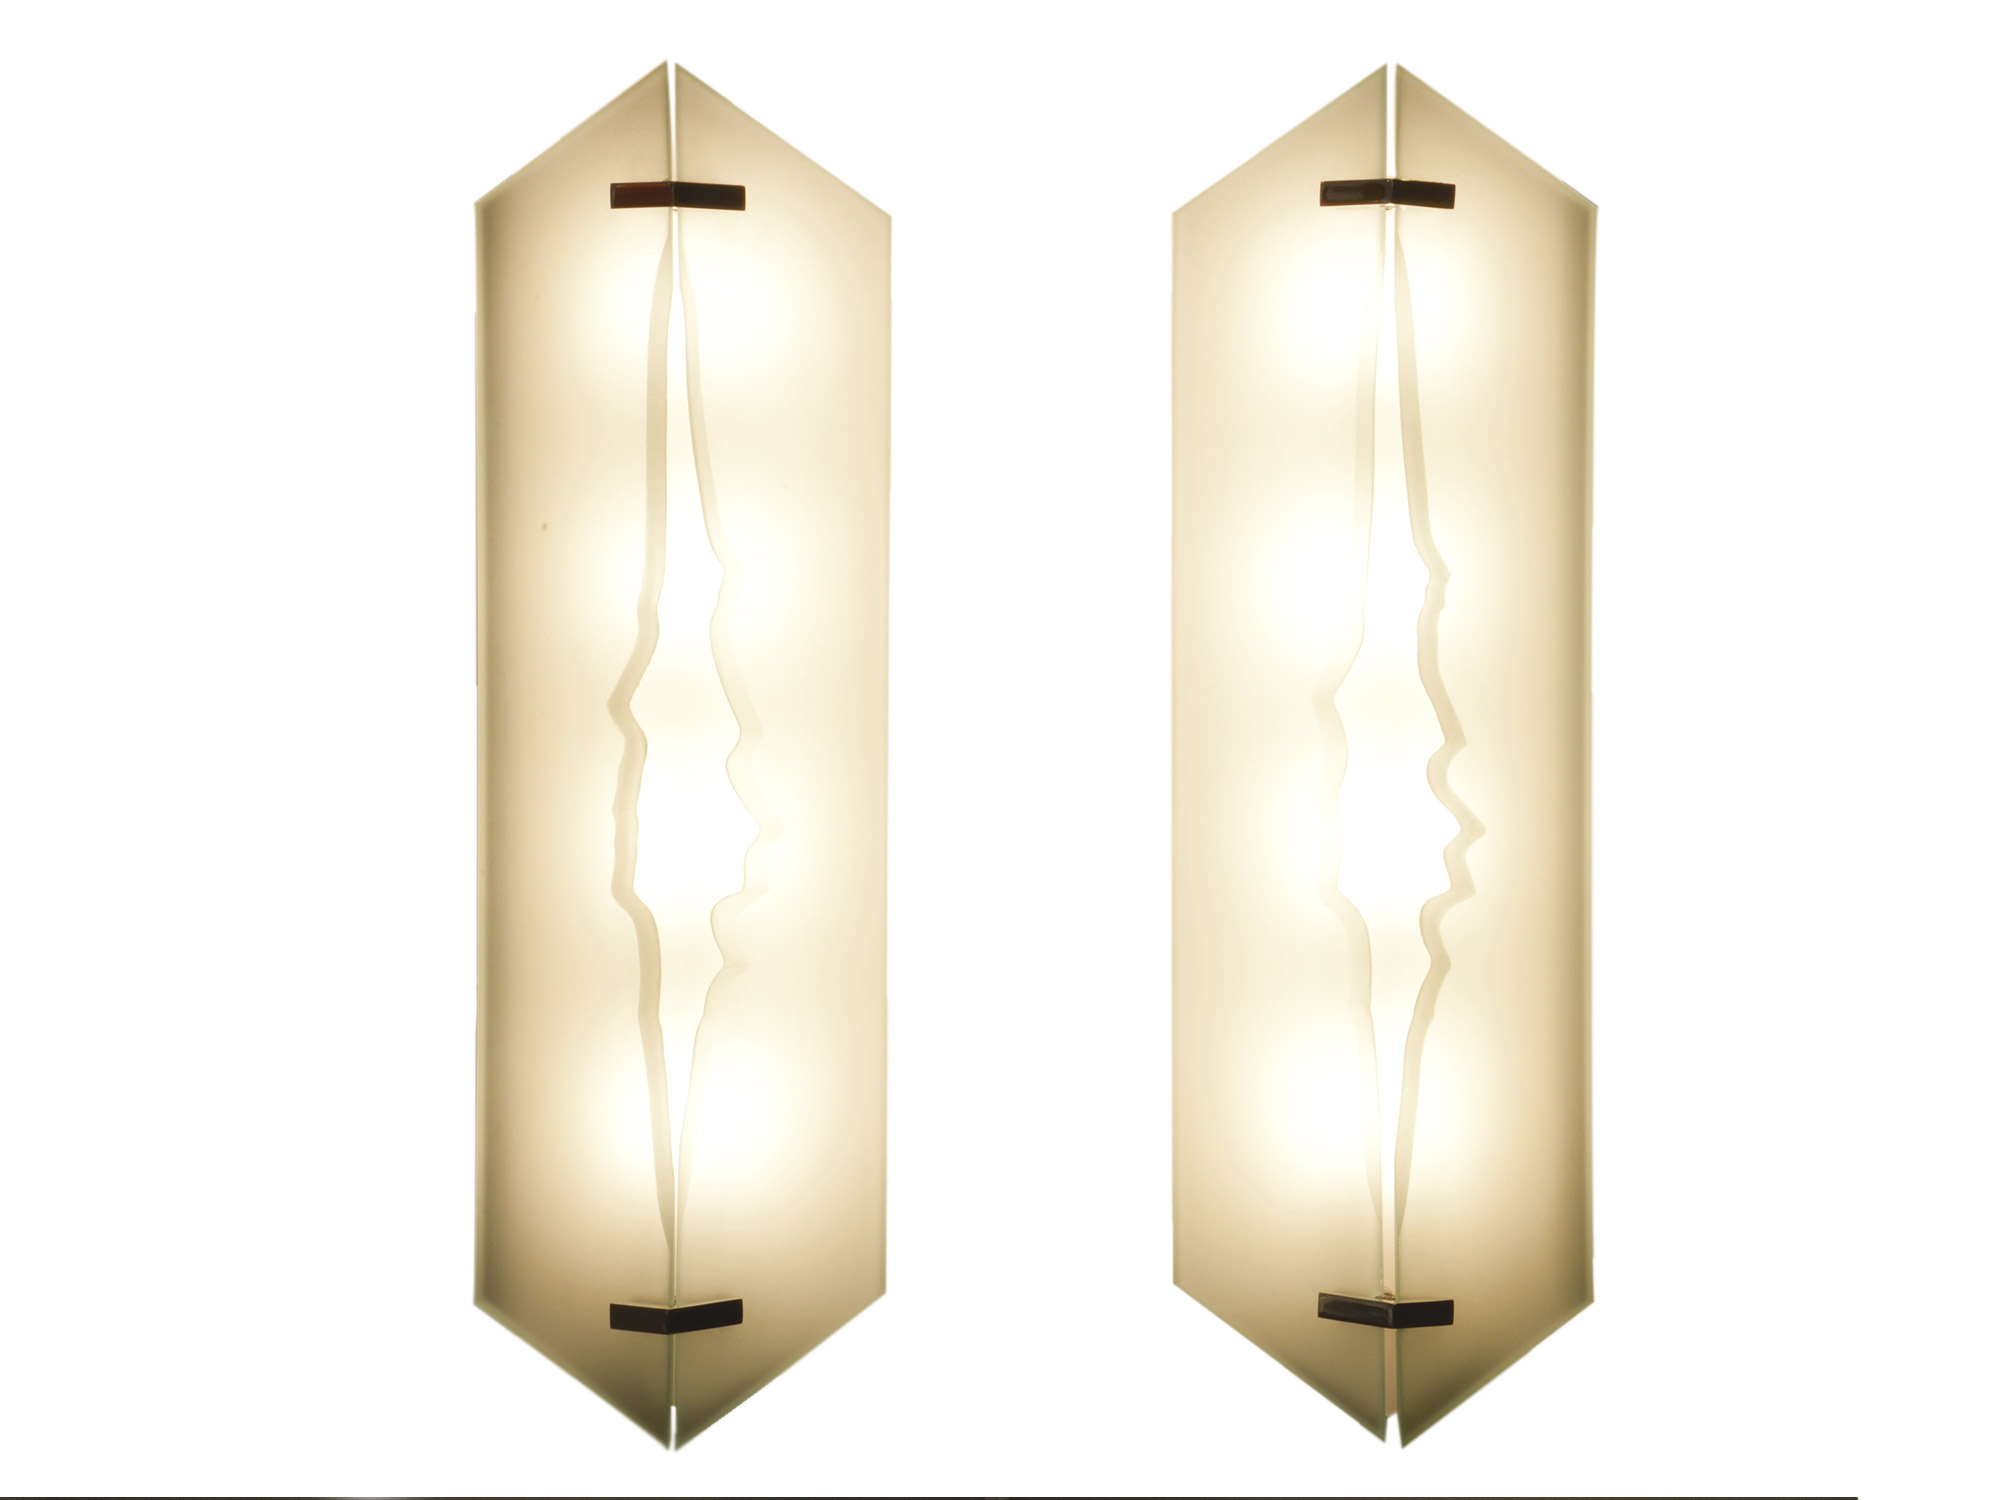 Fontana Arte - 3 pairs of wall lights | Paul Bert Serpette